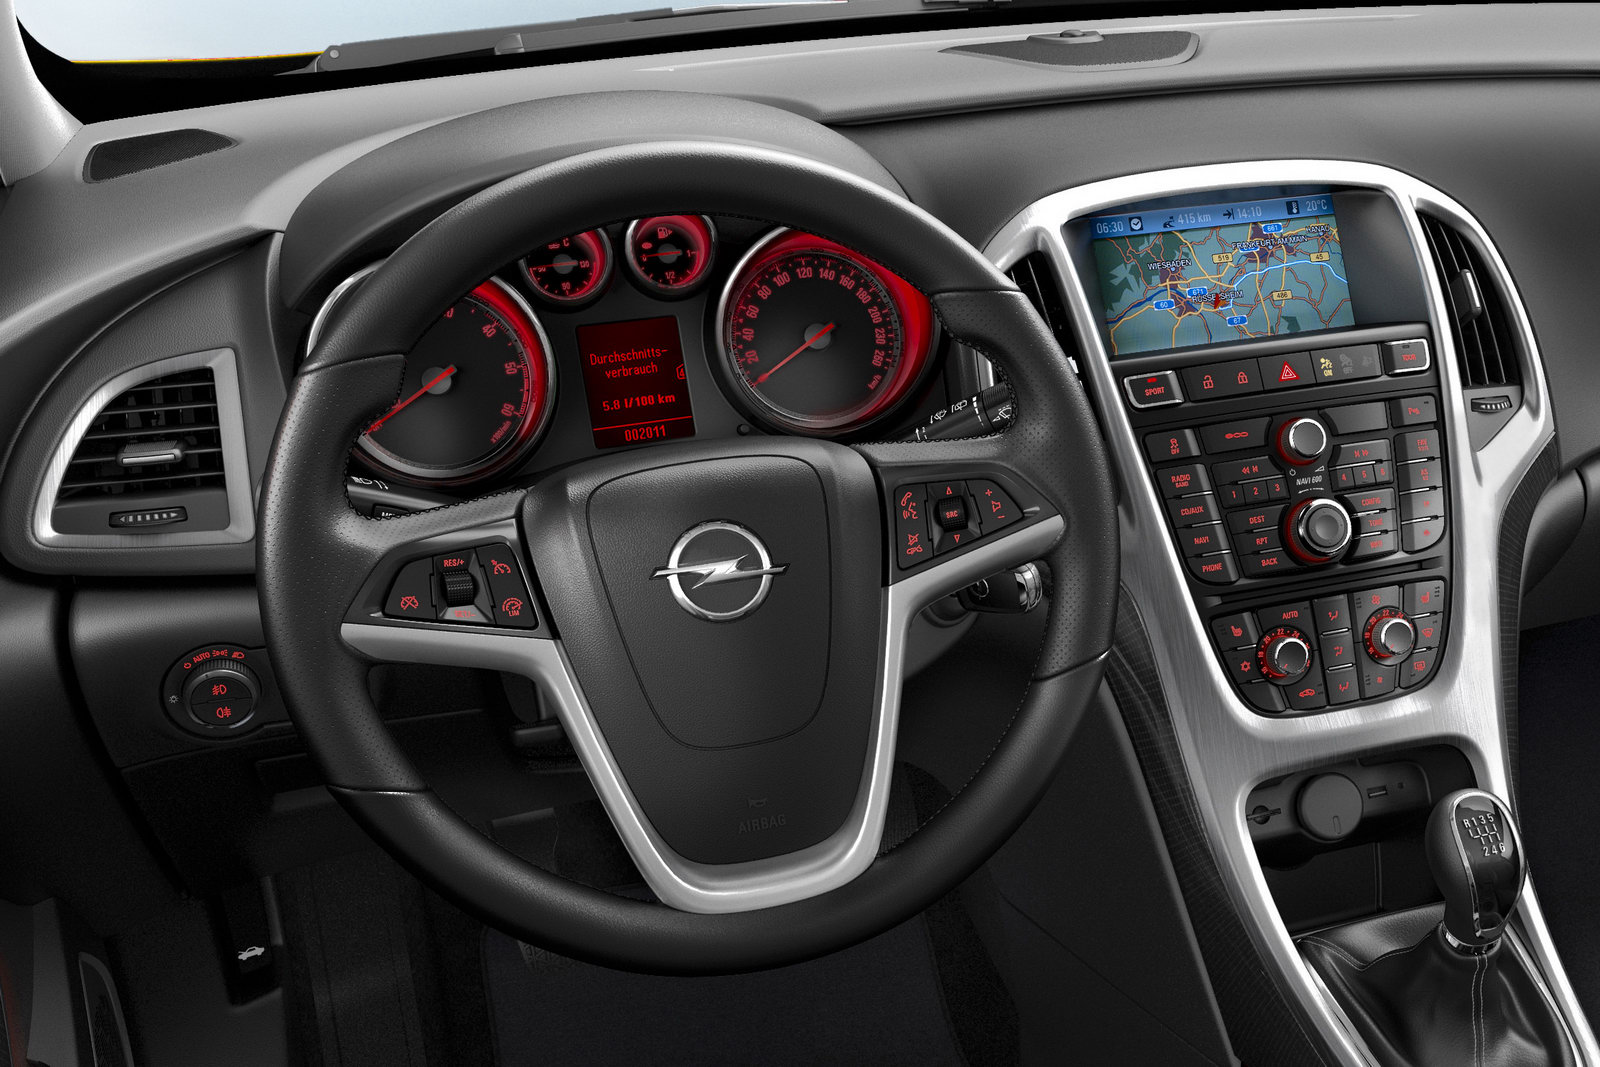 2014 Opel Astra h – pictures, information and specs - Auto-Database.com